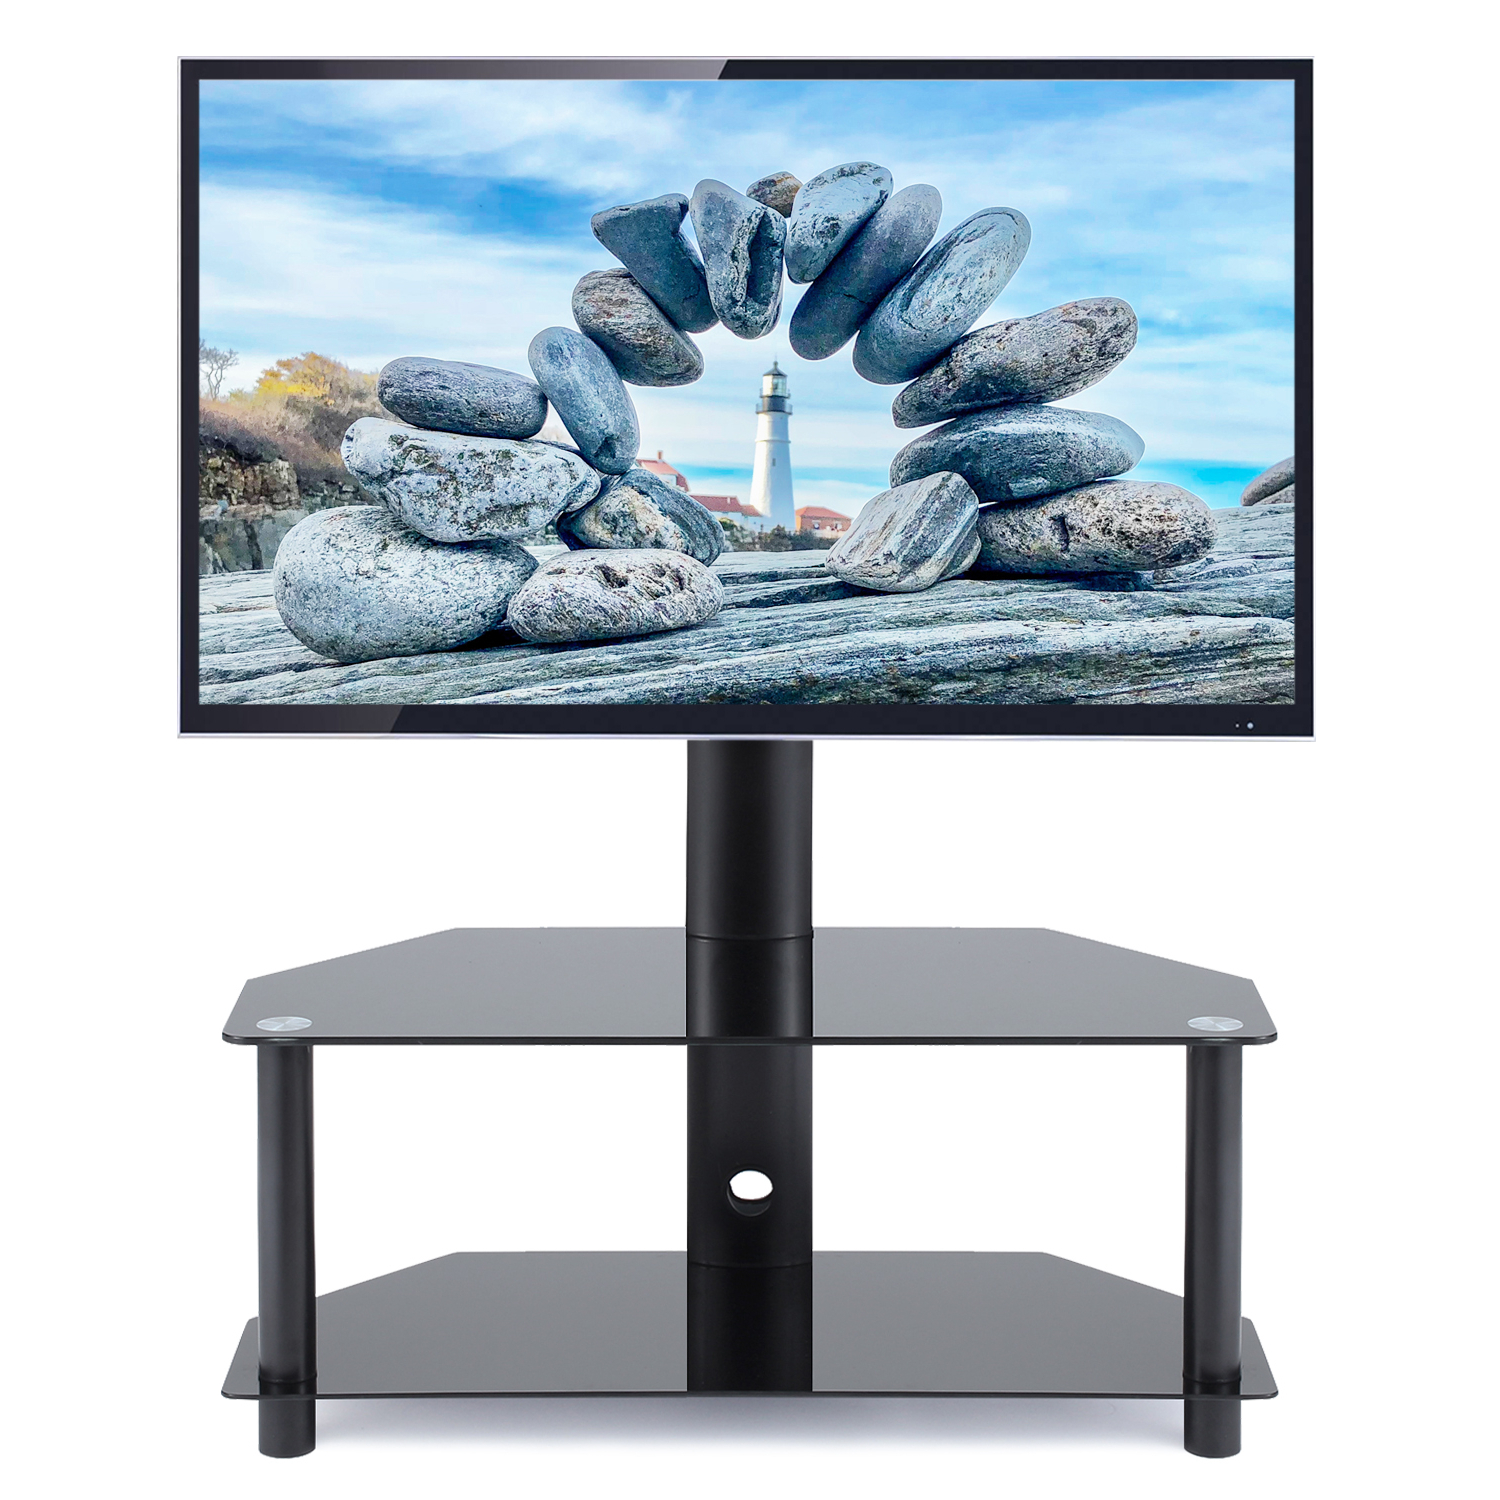 """5rcom Modern Swivel Floor Corner Tv Stand For Tvs Up To 55 Throughout Mission Corner Tv Stands For Tvs Up To 38"""" (View 14 of 20)"""